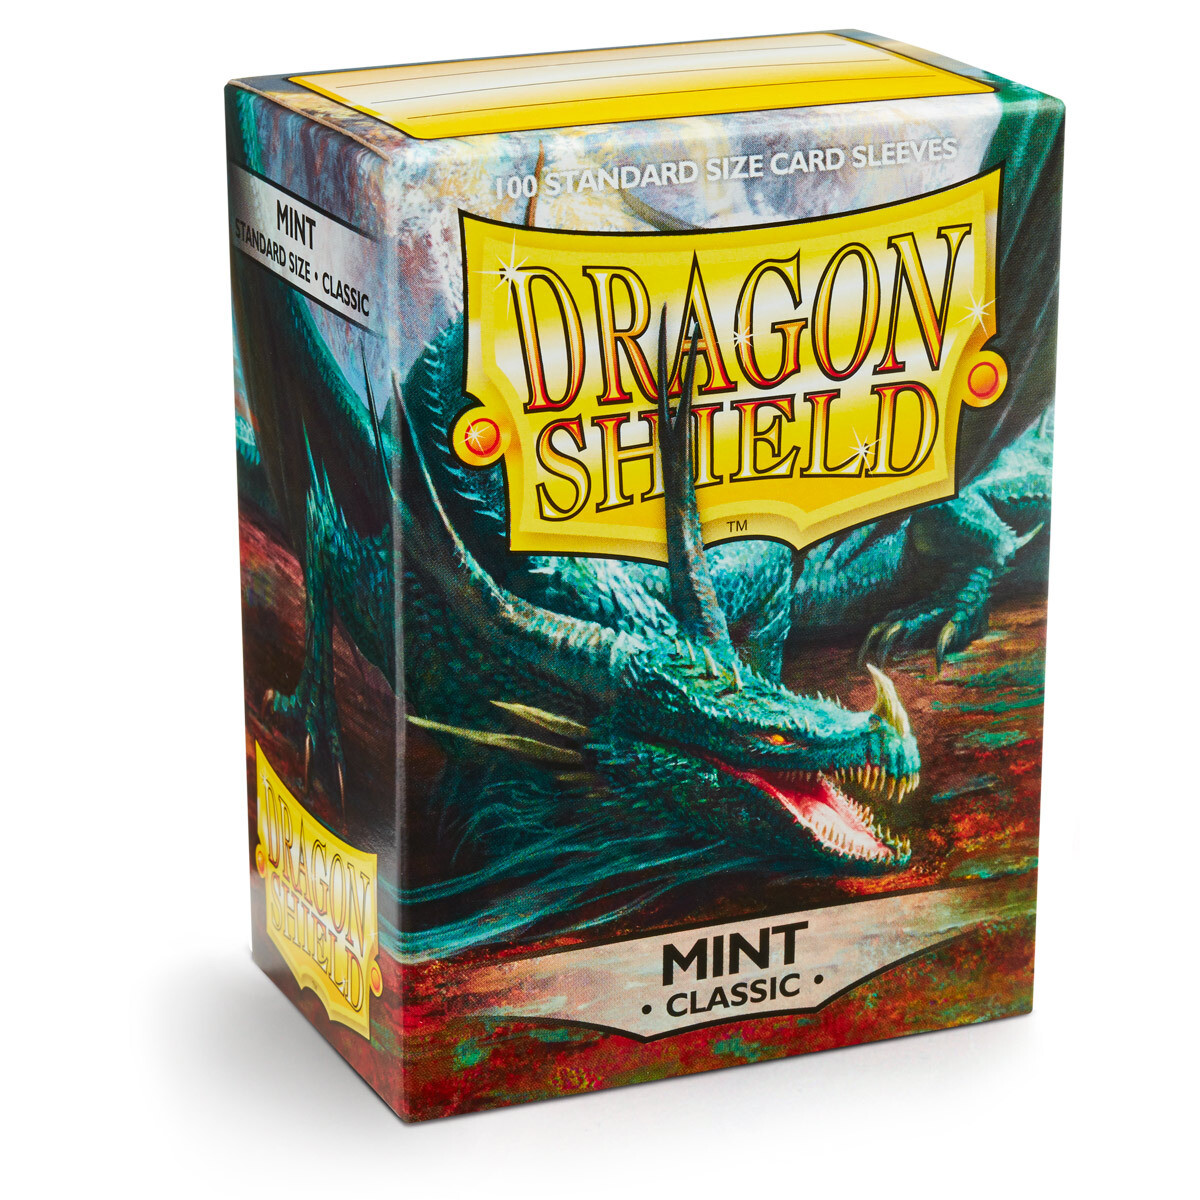 Dragon Shield 100 Sleeves - Mint